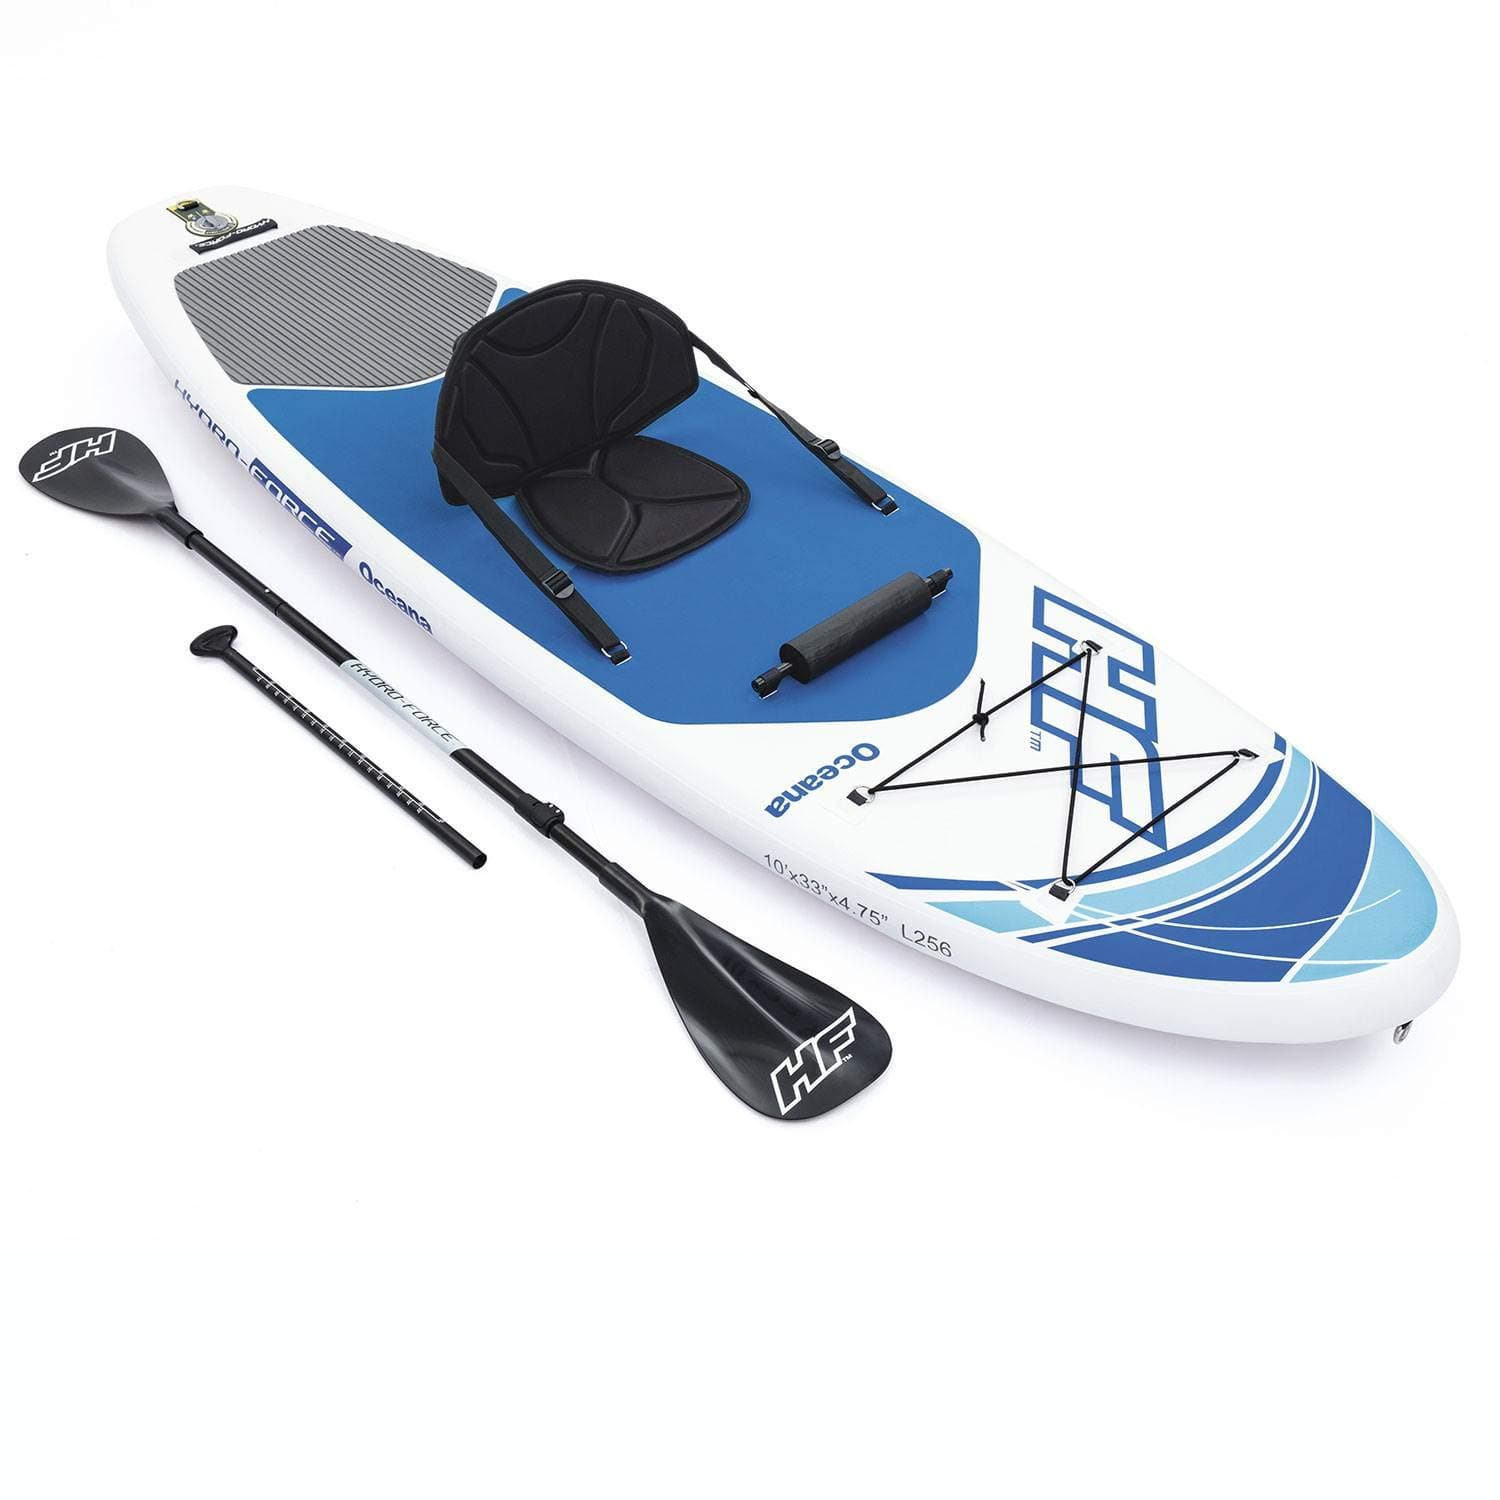 Bestway Hydro-Force Oceana Inflatable Stand Up Paddle Board $237.61